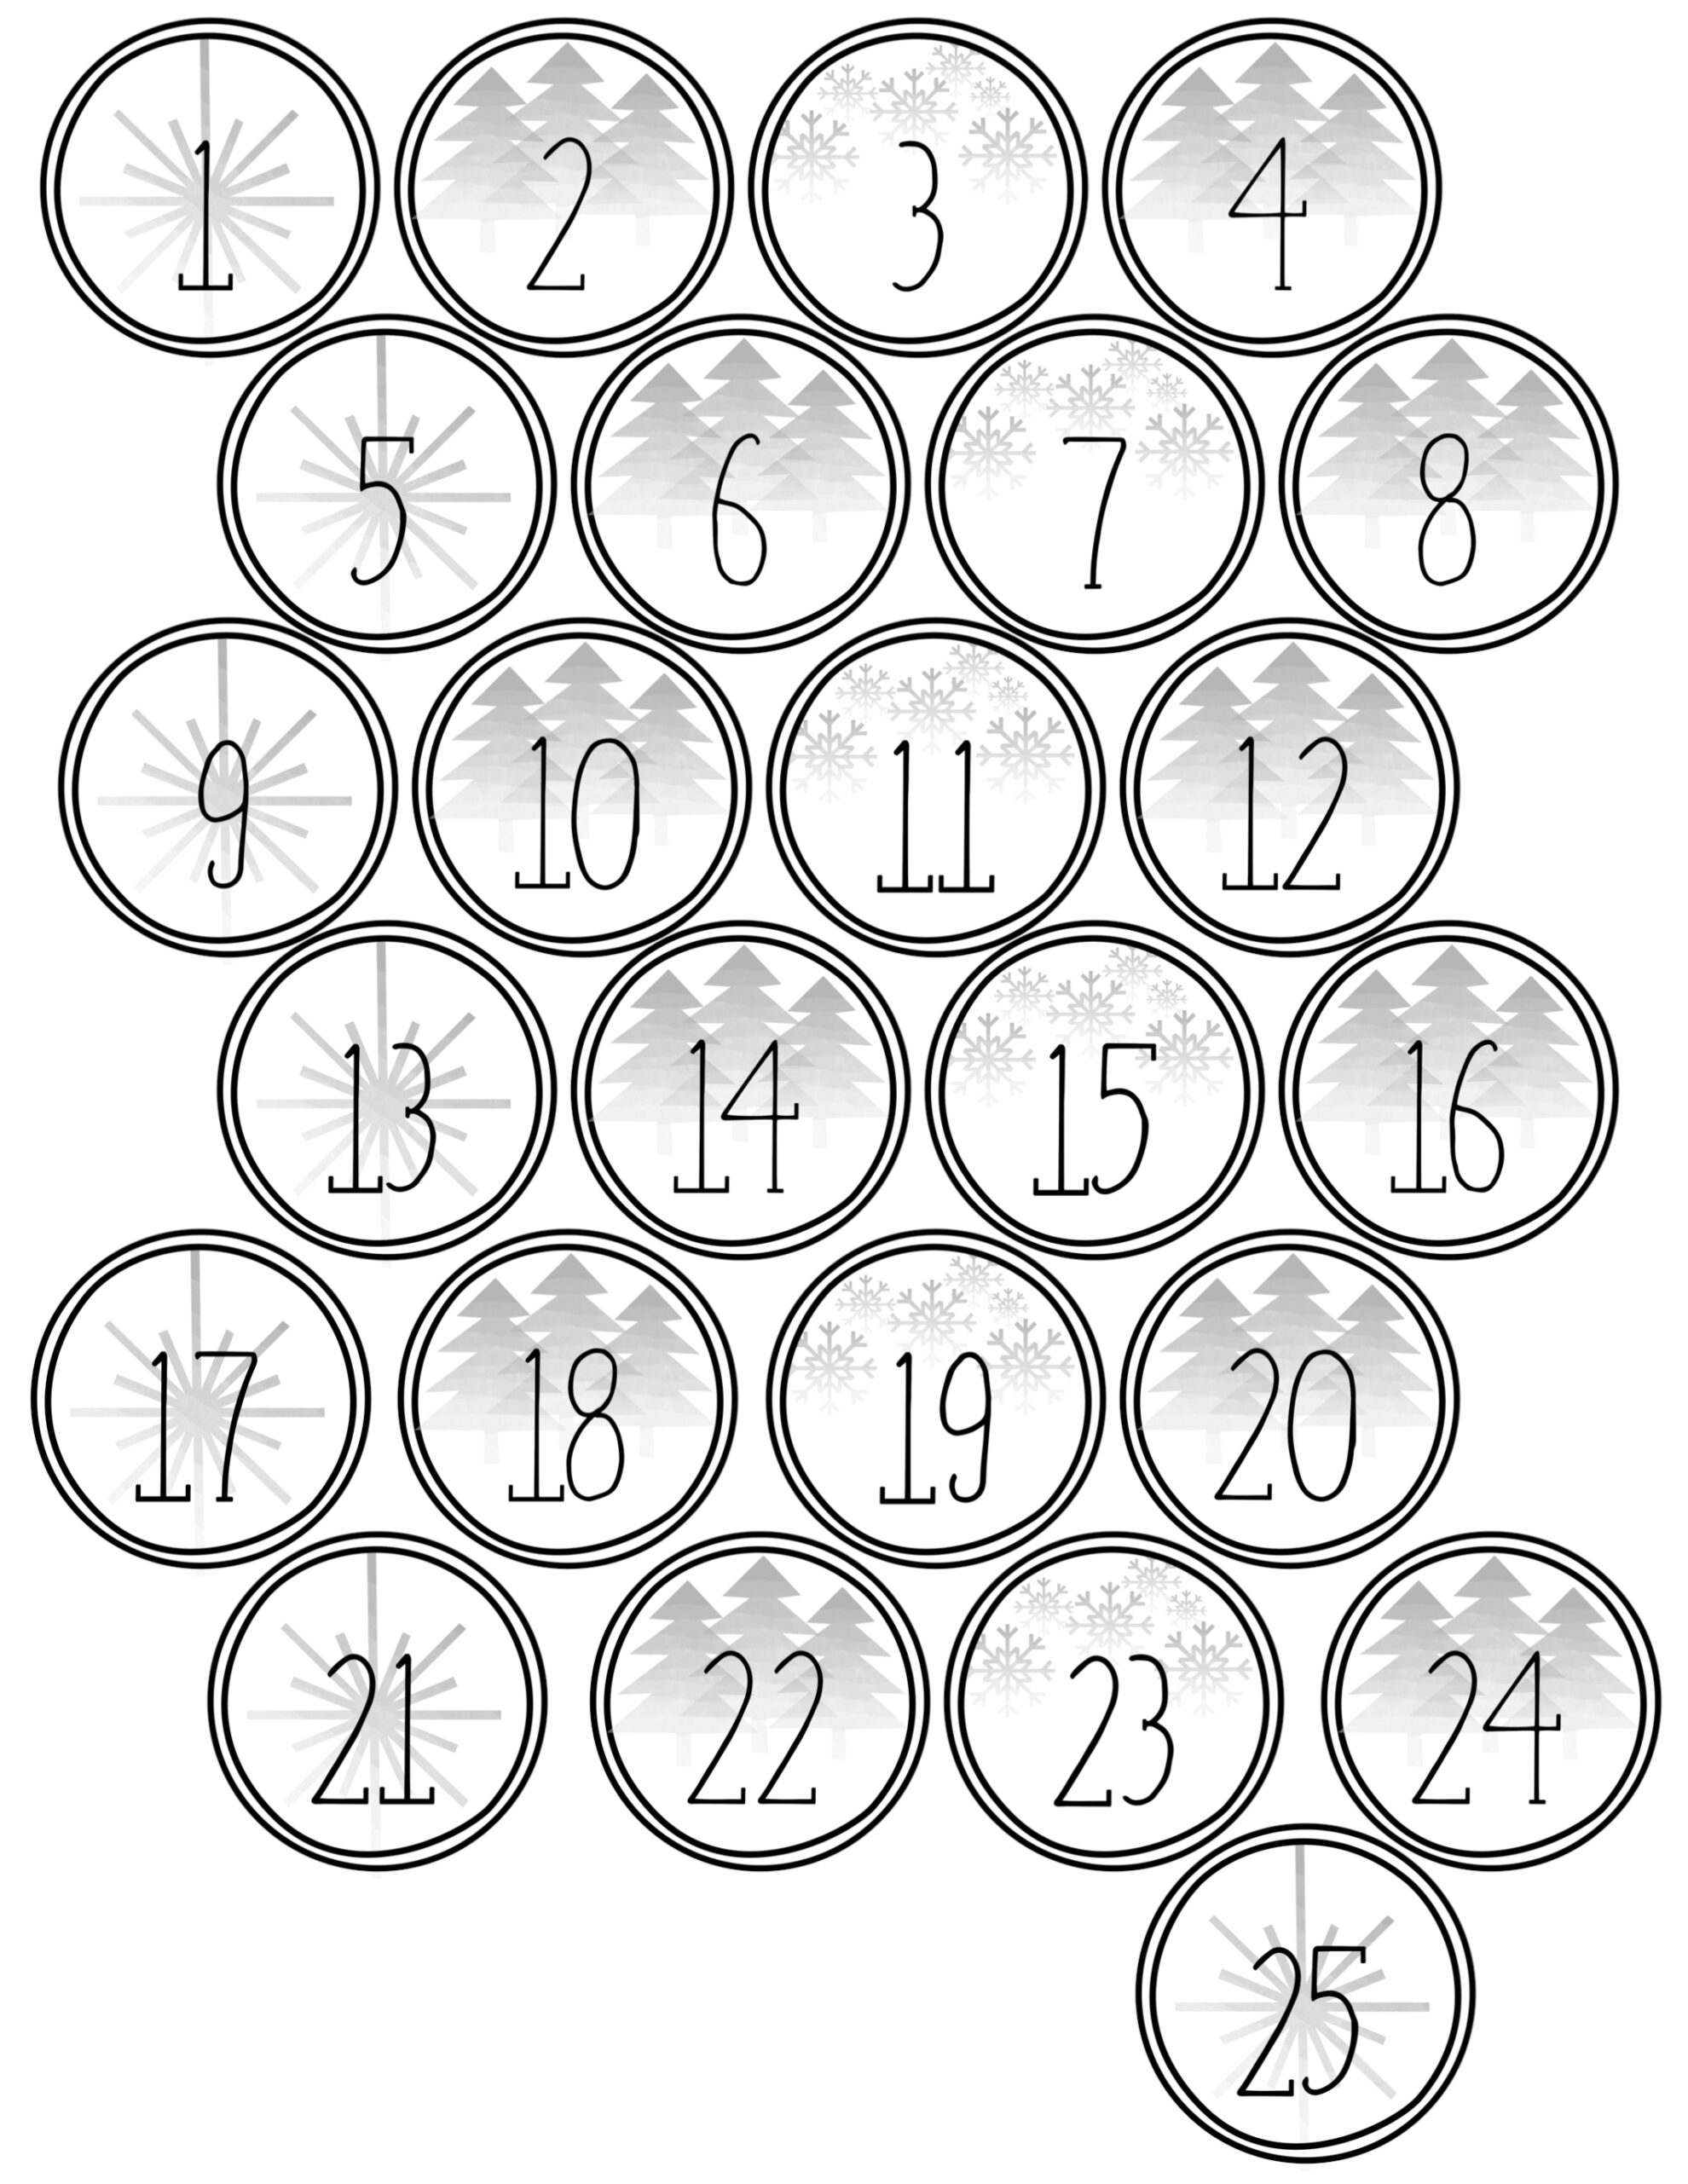 Christmas Advent Calendar Printable Numbers - Paper Trail Design